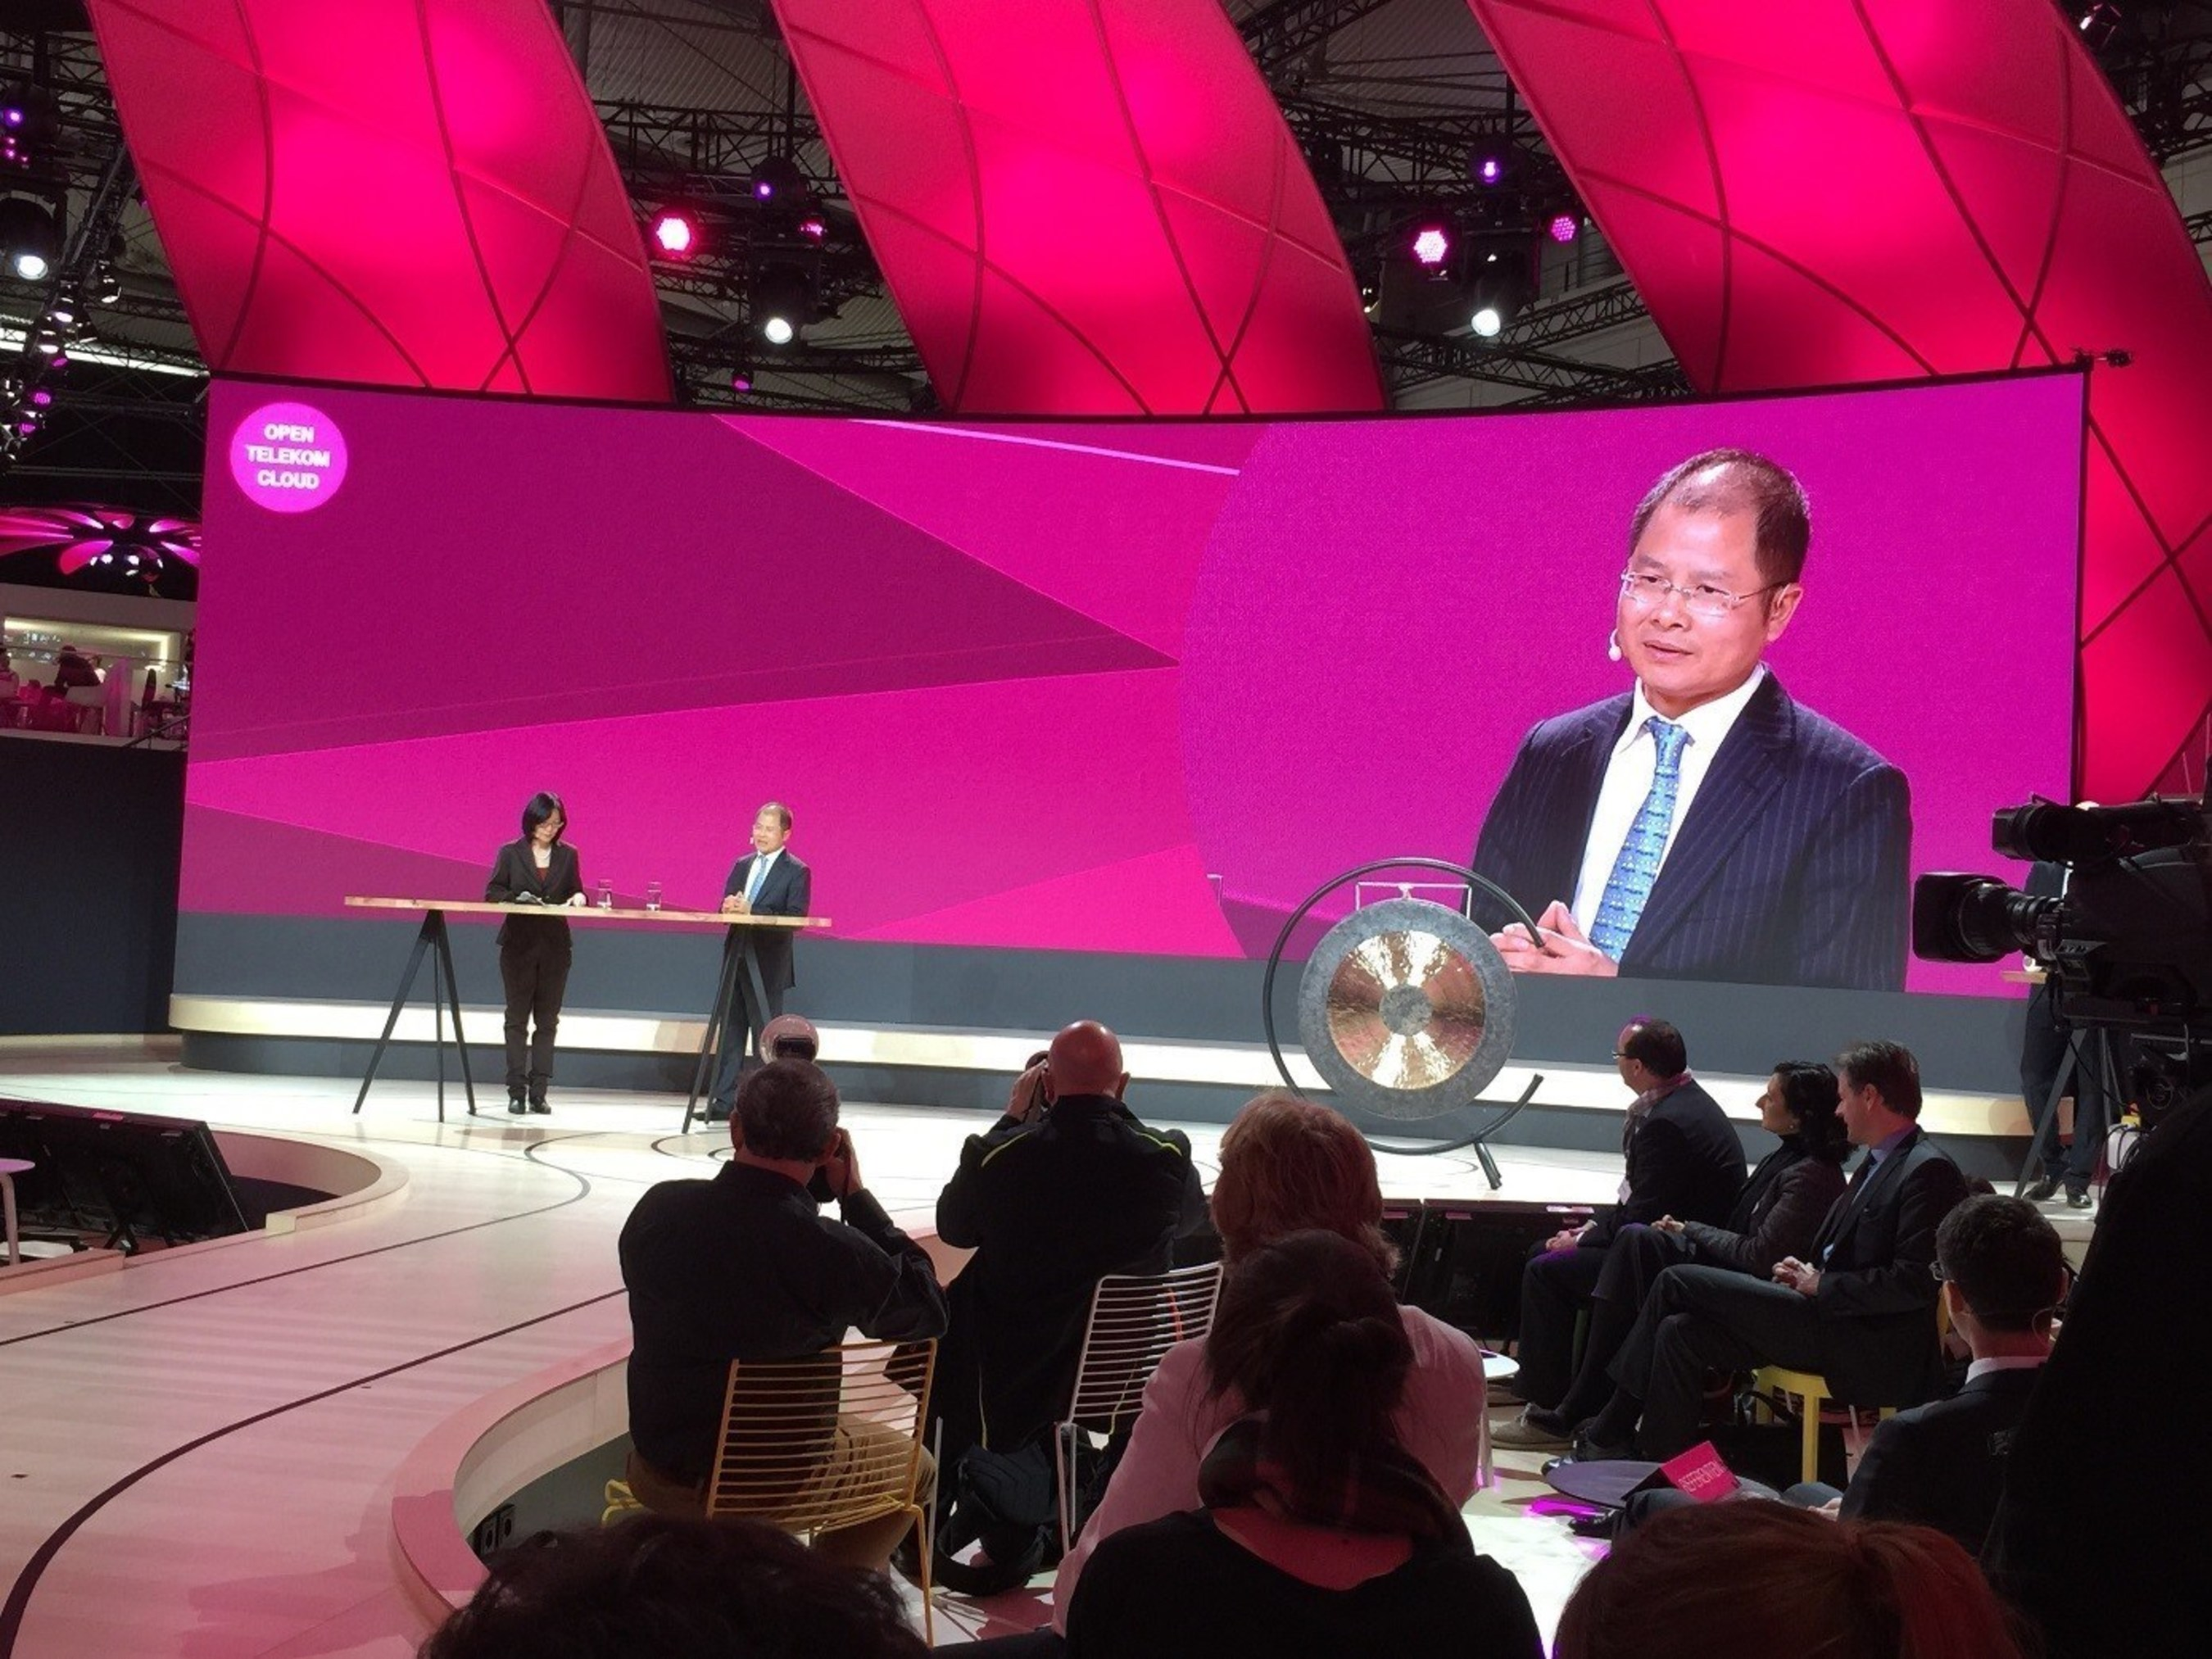 Huawei's Rotating CEO Eric Xu gave a speech at the press conference announcing the launch of Deutsche Telekom's Open Telekom Cloud.